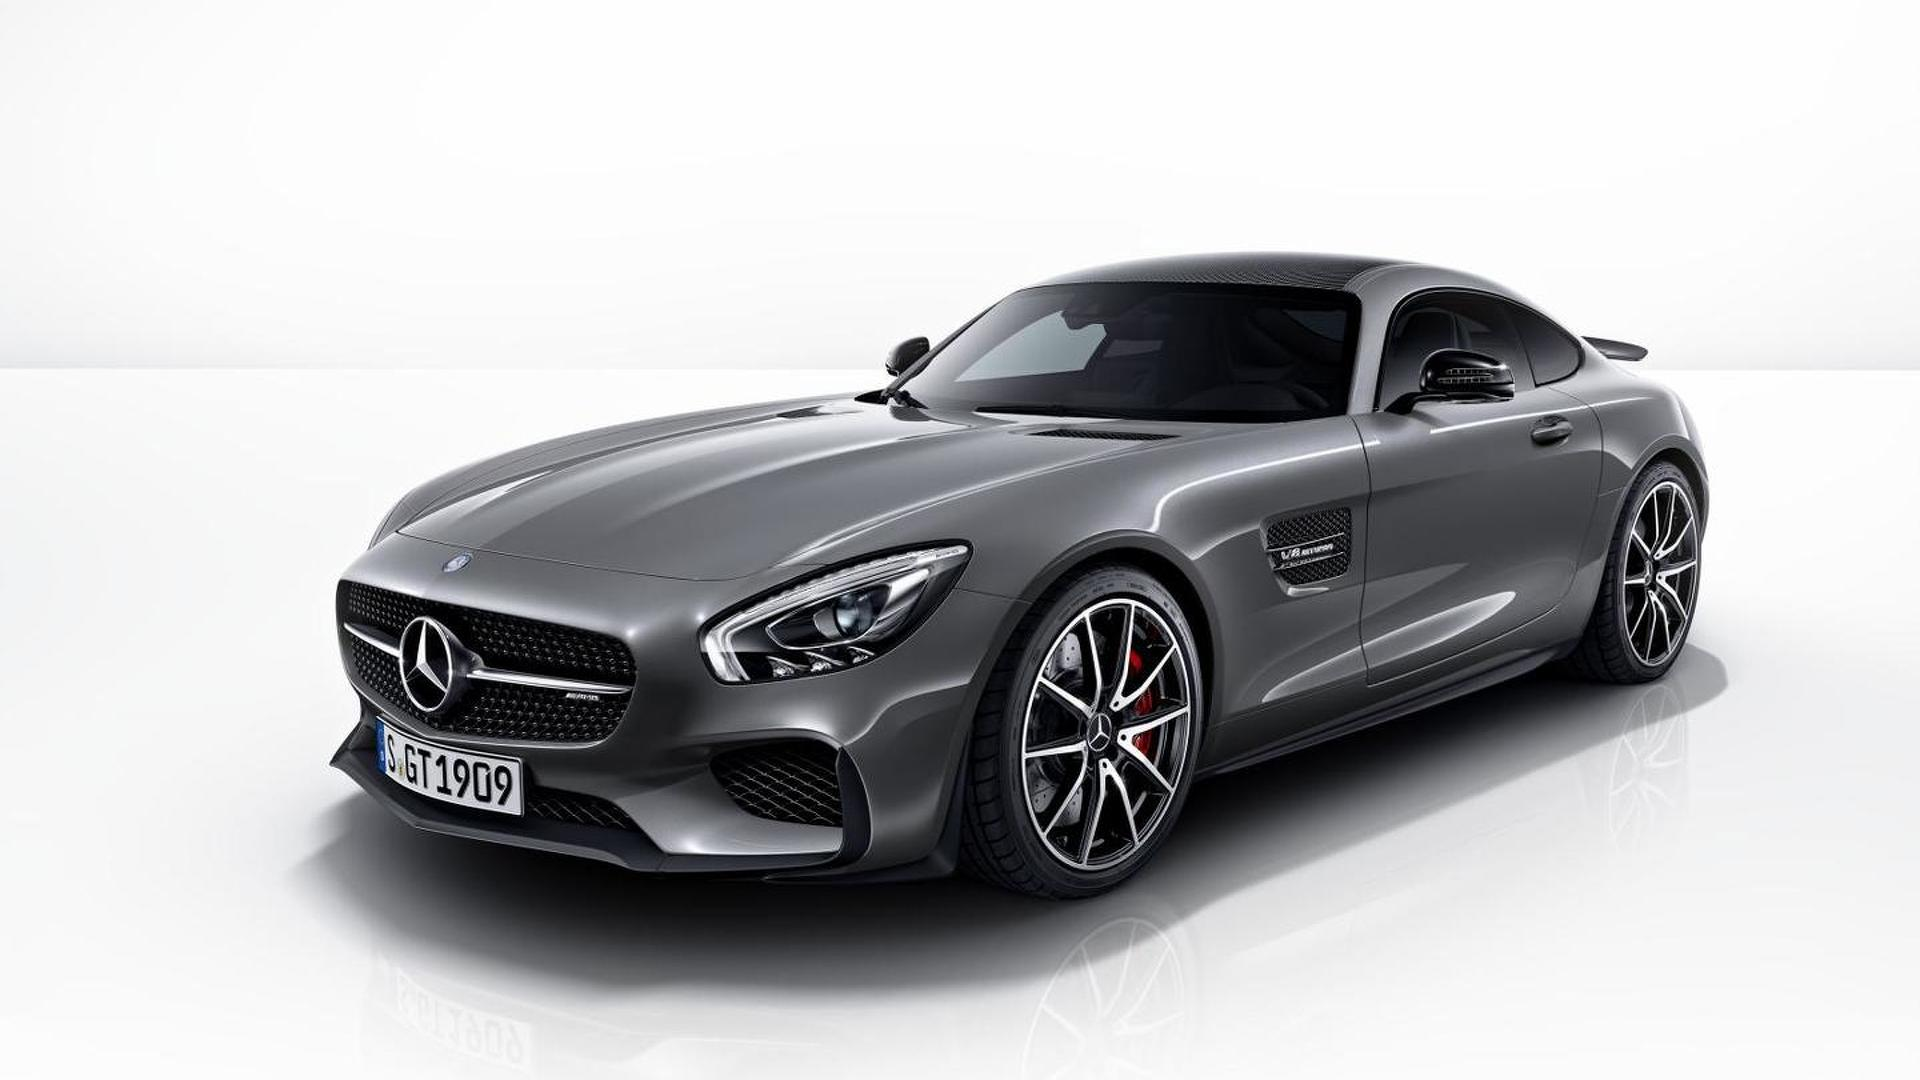 Mercedes amg gt starts from 115 430 eur c63 amg priced at for Mercedes benz amg gt price